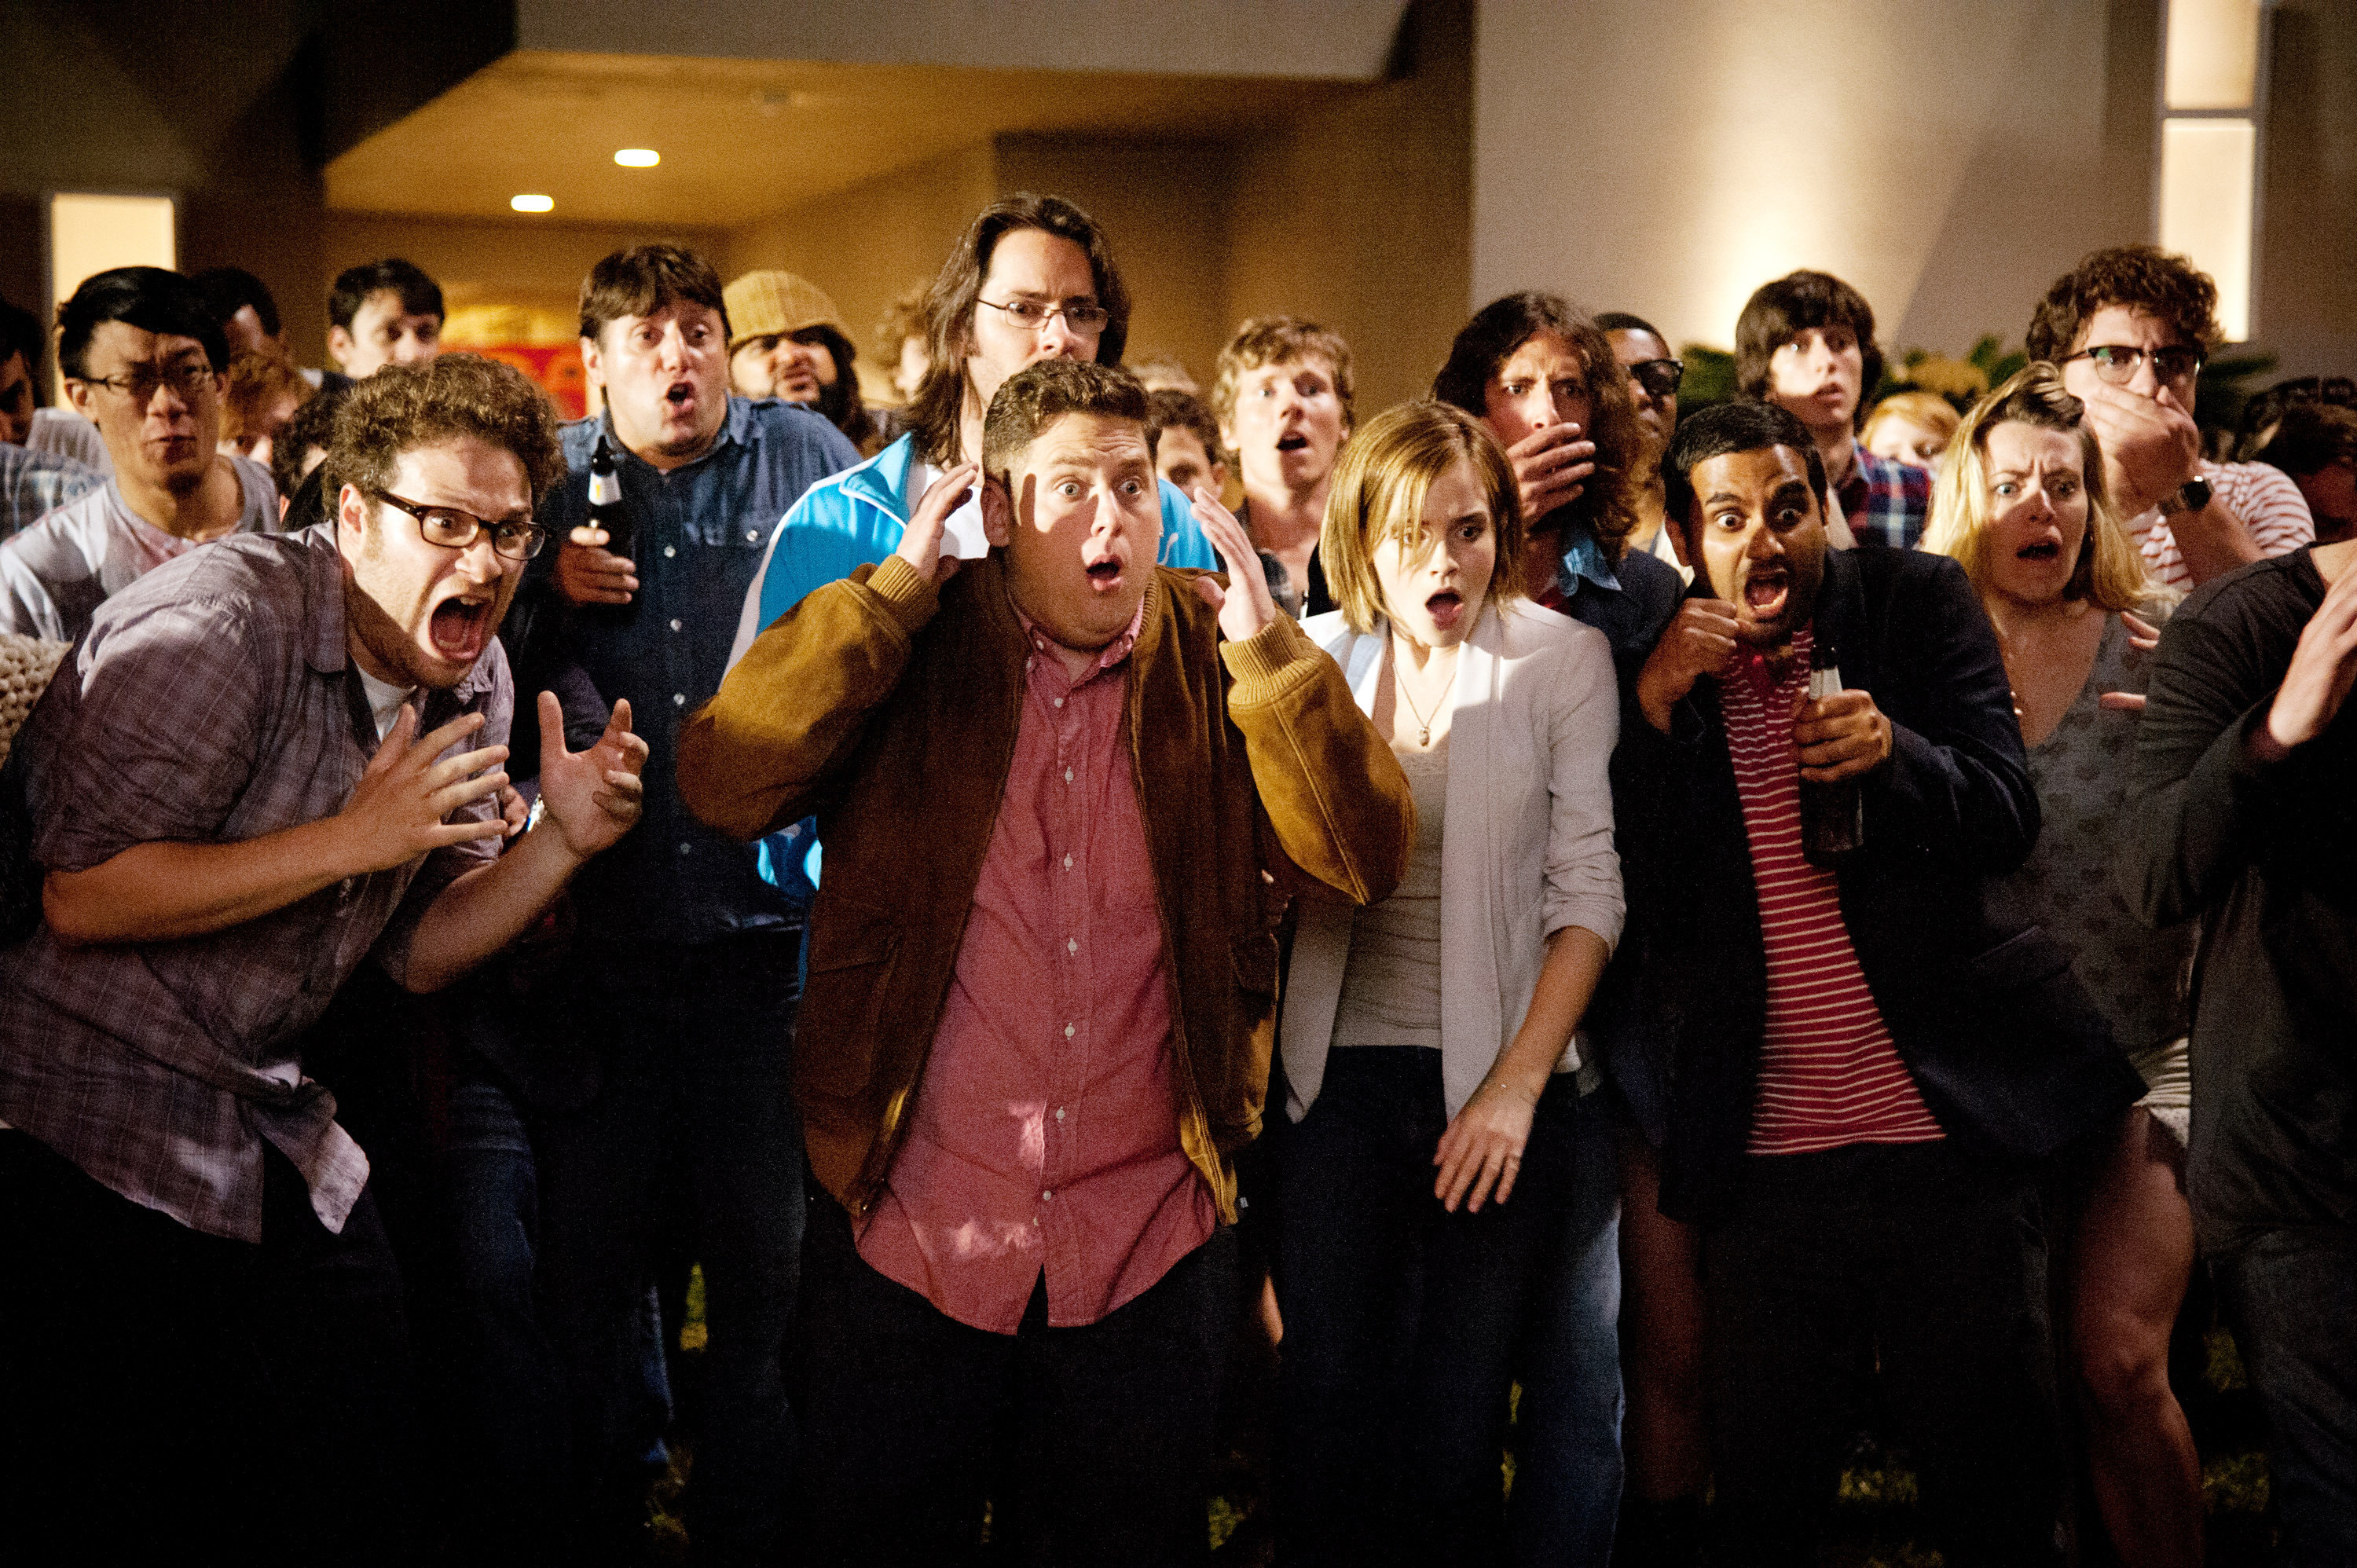 THIS IS THE END, foreground from left: Seth Rogen, Jonah Hill, Emma Watson, Aziz Ansari